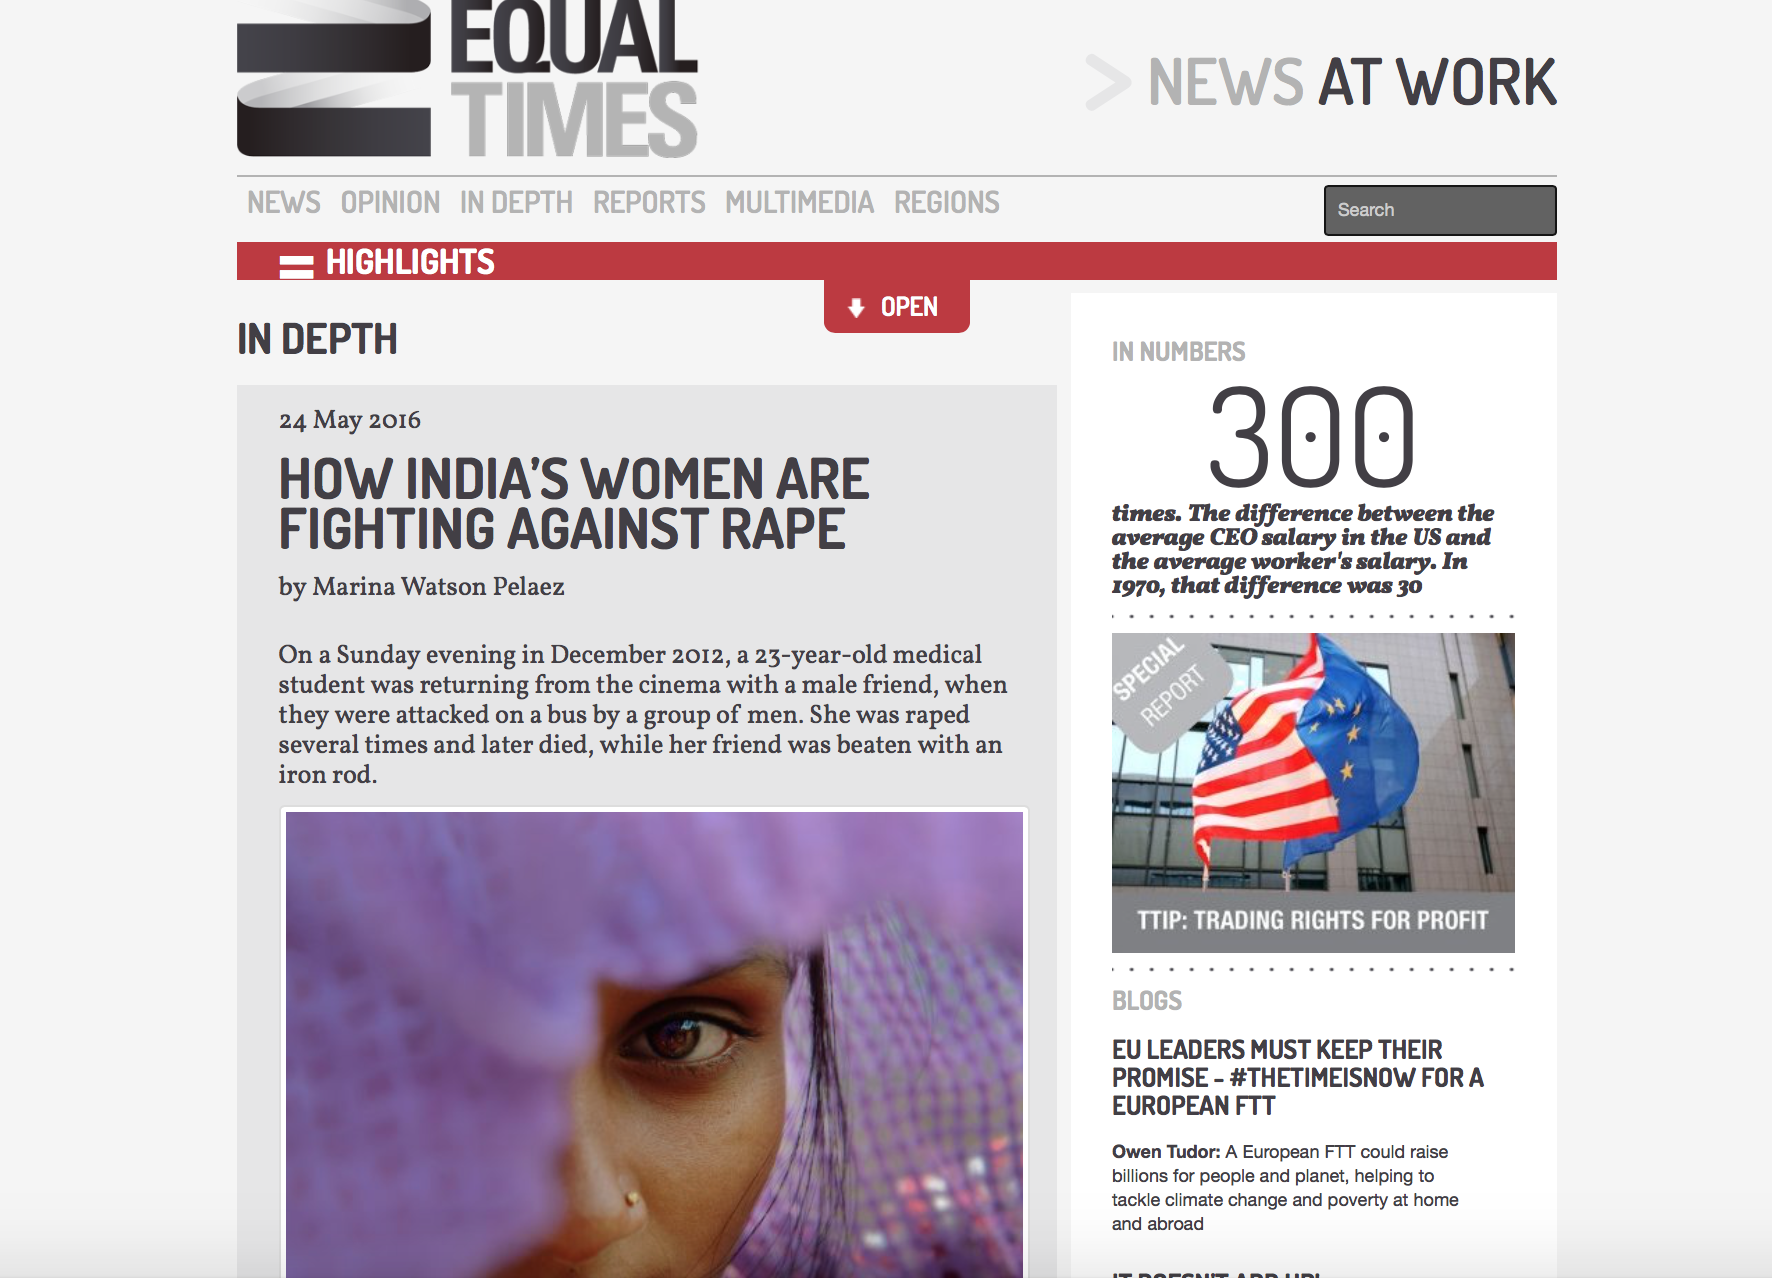 https://www.equaltimes.org/how-india-s-women-are-fighting#.W4eH7y-B2YU